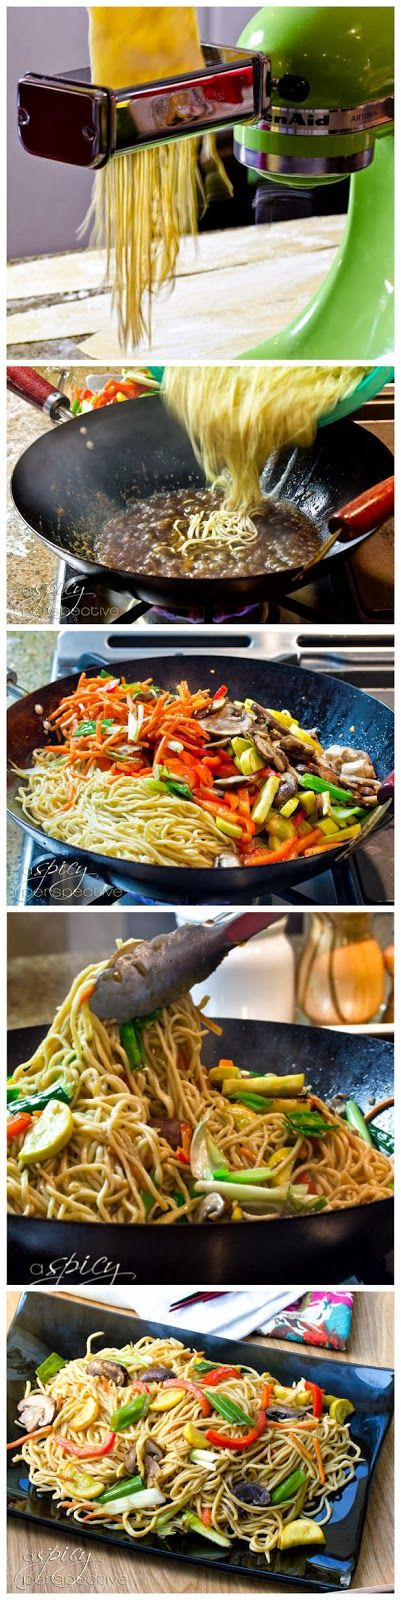 "Wonder if this could be made with coconut flour""""?Vegetable Lo Mein Recipe with Homemade Noodles - Askmefood"